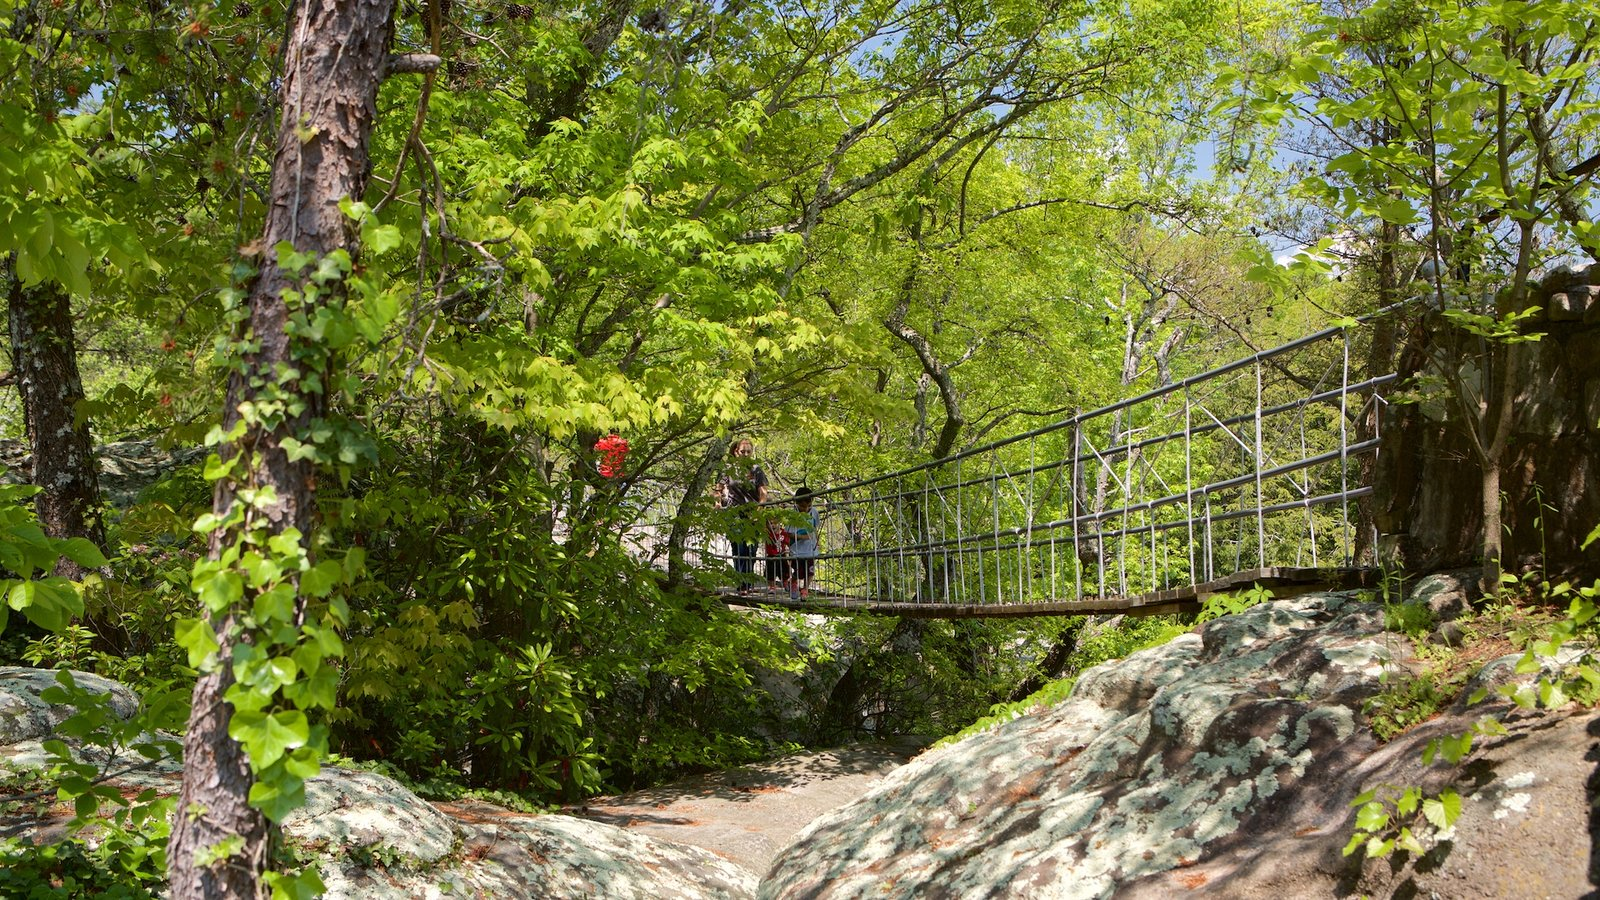 Lookout Mountain featuring forests and a bridge